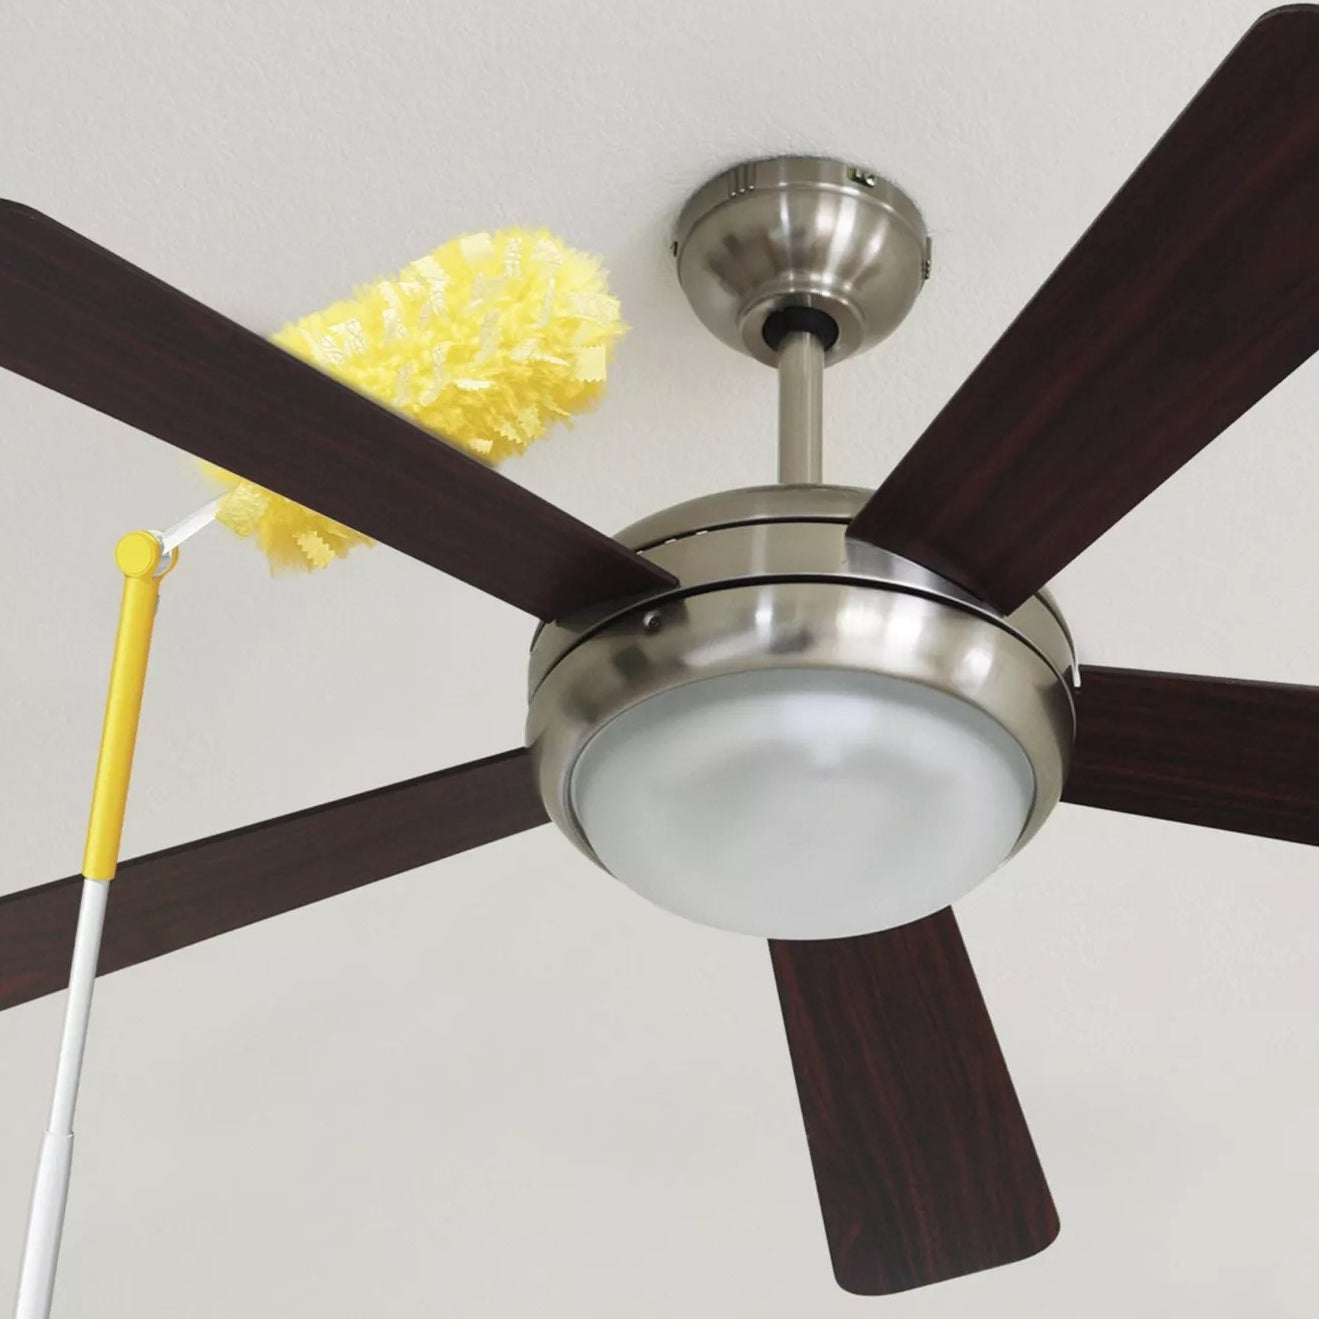 A Swiffer Duster angled to clean the top of a ceiling fan blade